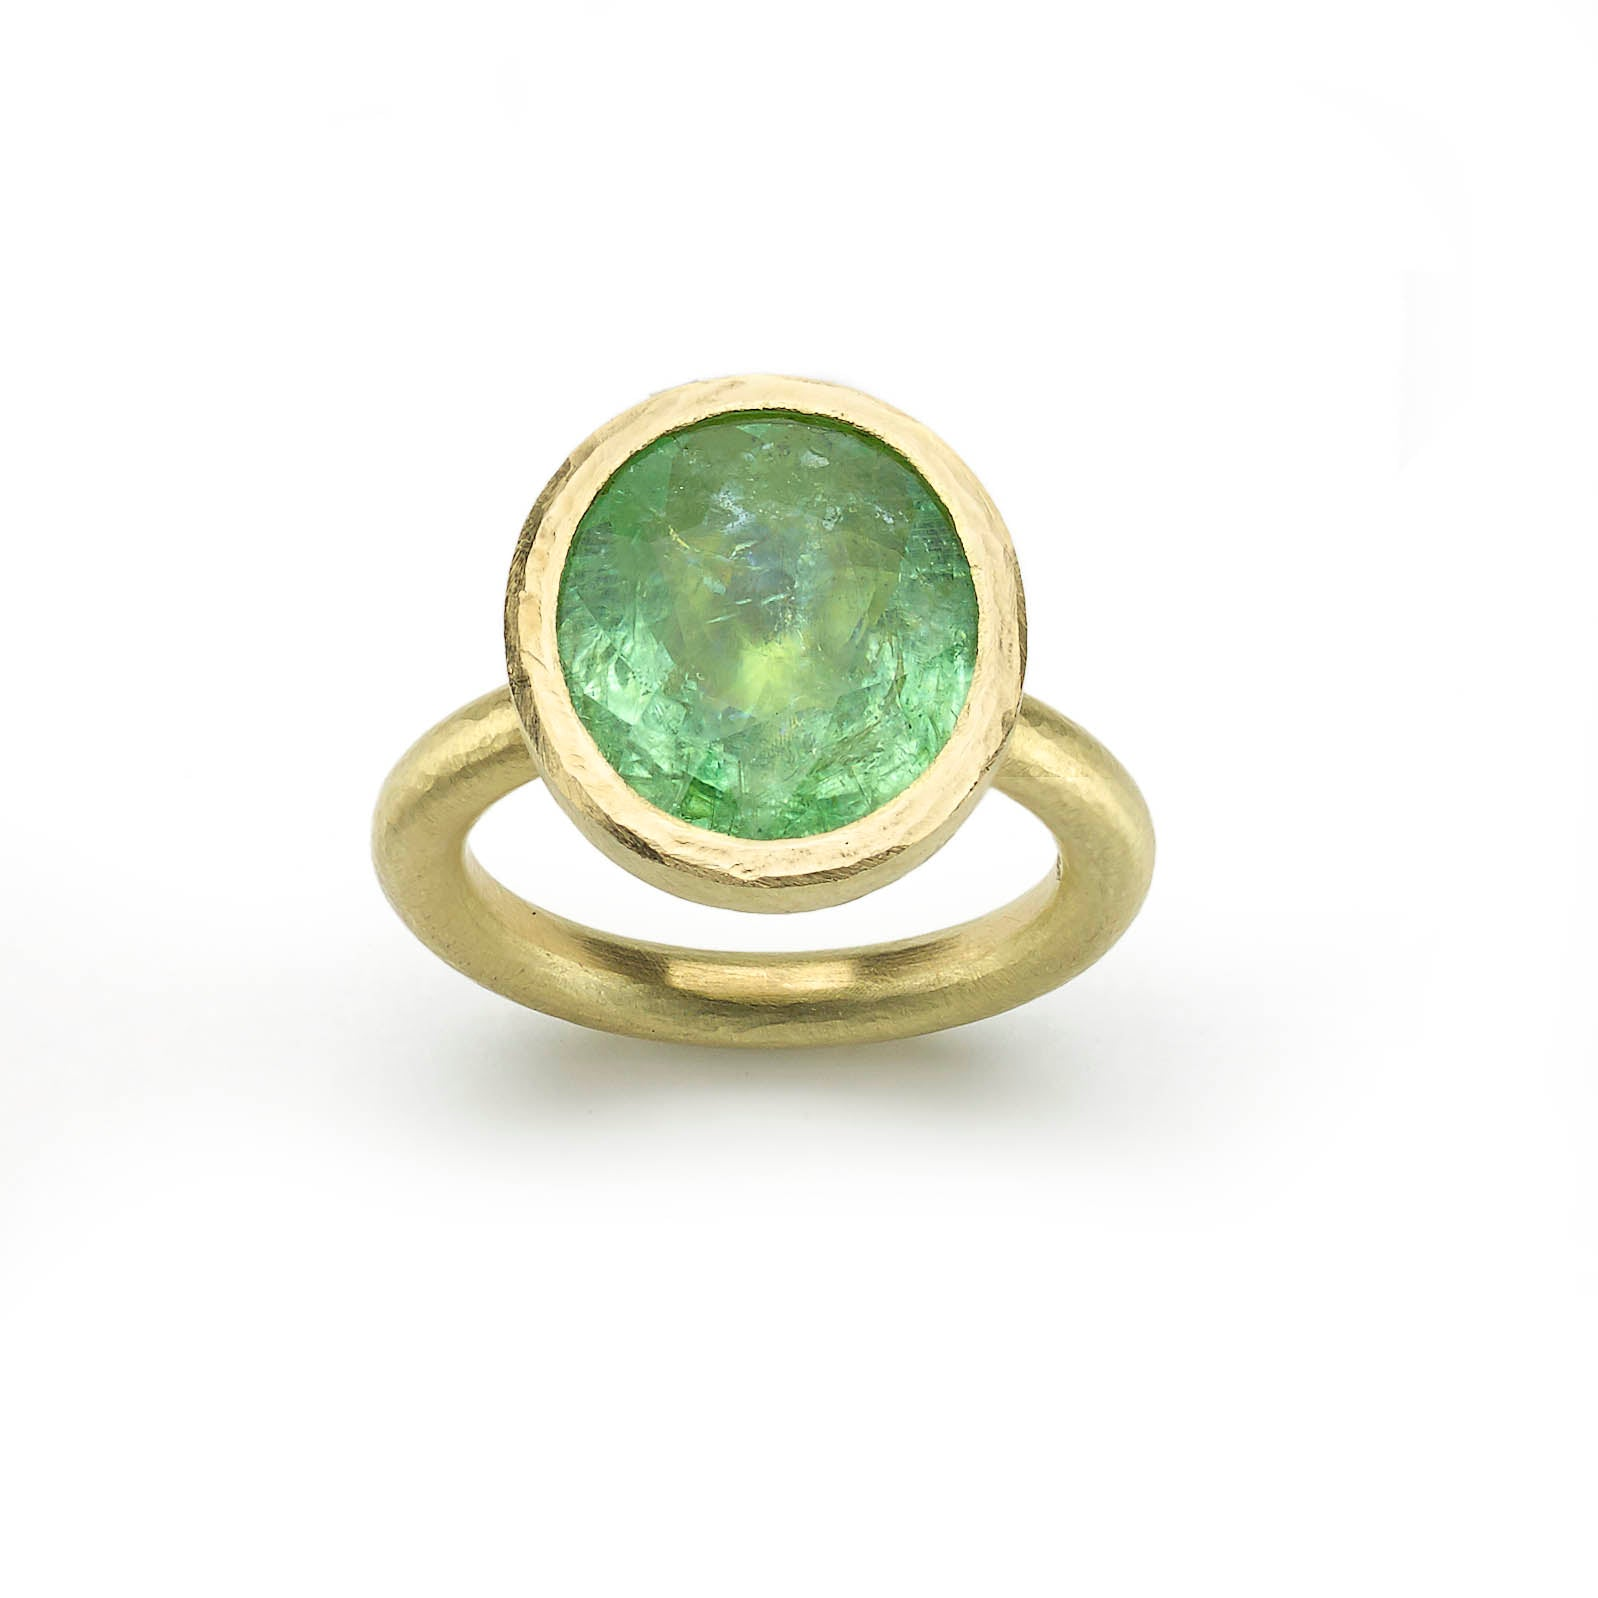 Mint Green Paraiba Tourmaline Ring